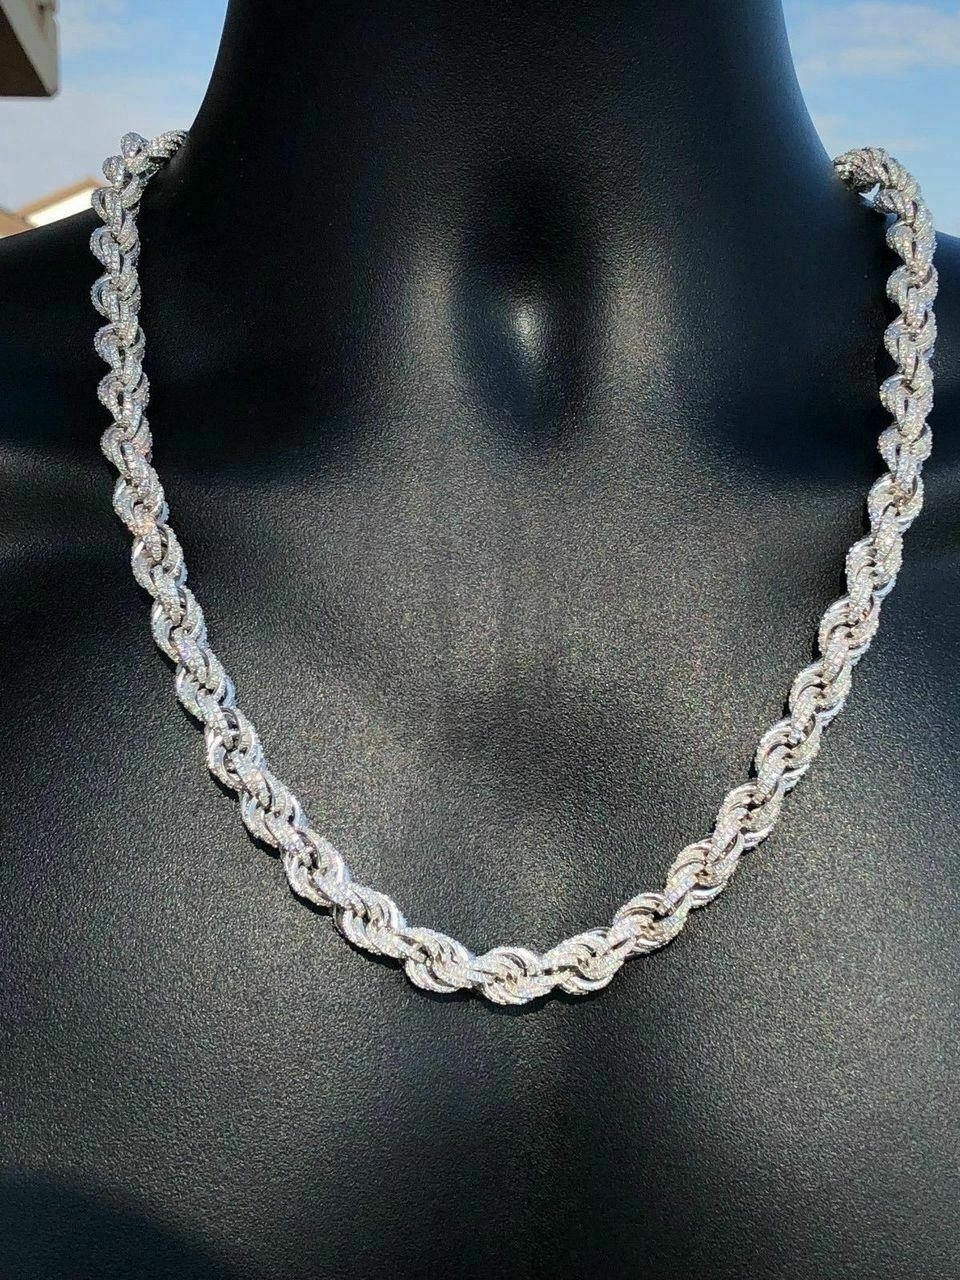 Men's_Solid_925_Sterling_Silver_Men's_Rope_Chain_Thick_9mm_ICY_Diamond